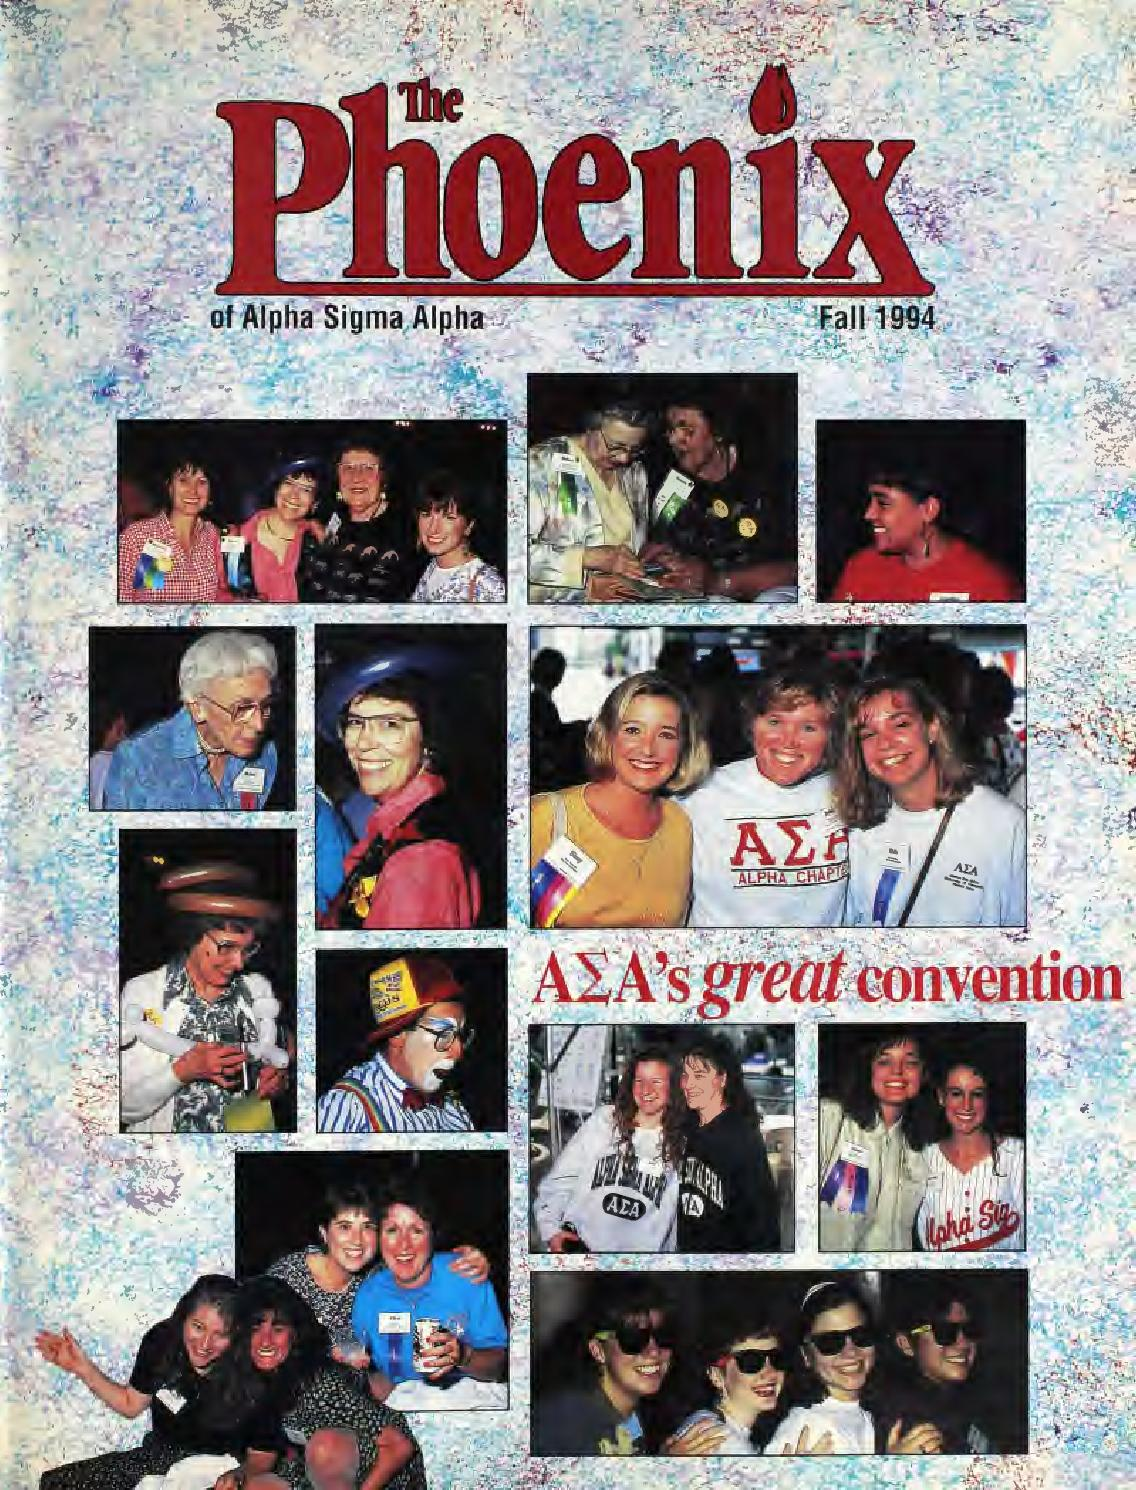 asa phoenix vol no fall by alpha sigma alpha sorority asa phoenix vol 83 no 1 fall 1997 by alpha sigma alpha sorority issuu